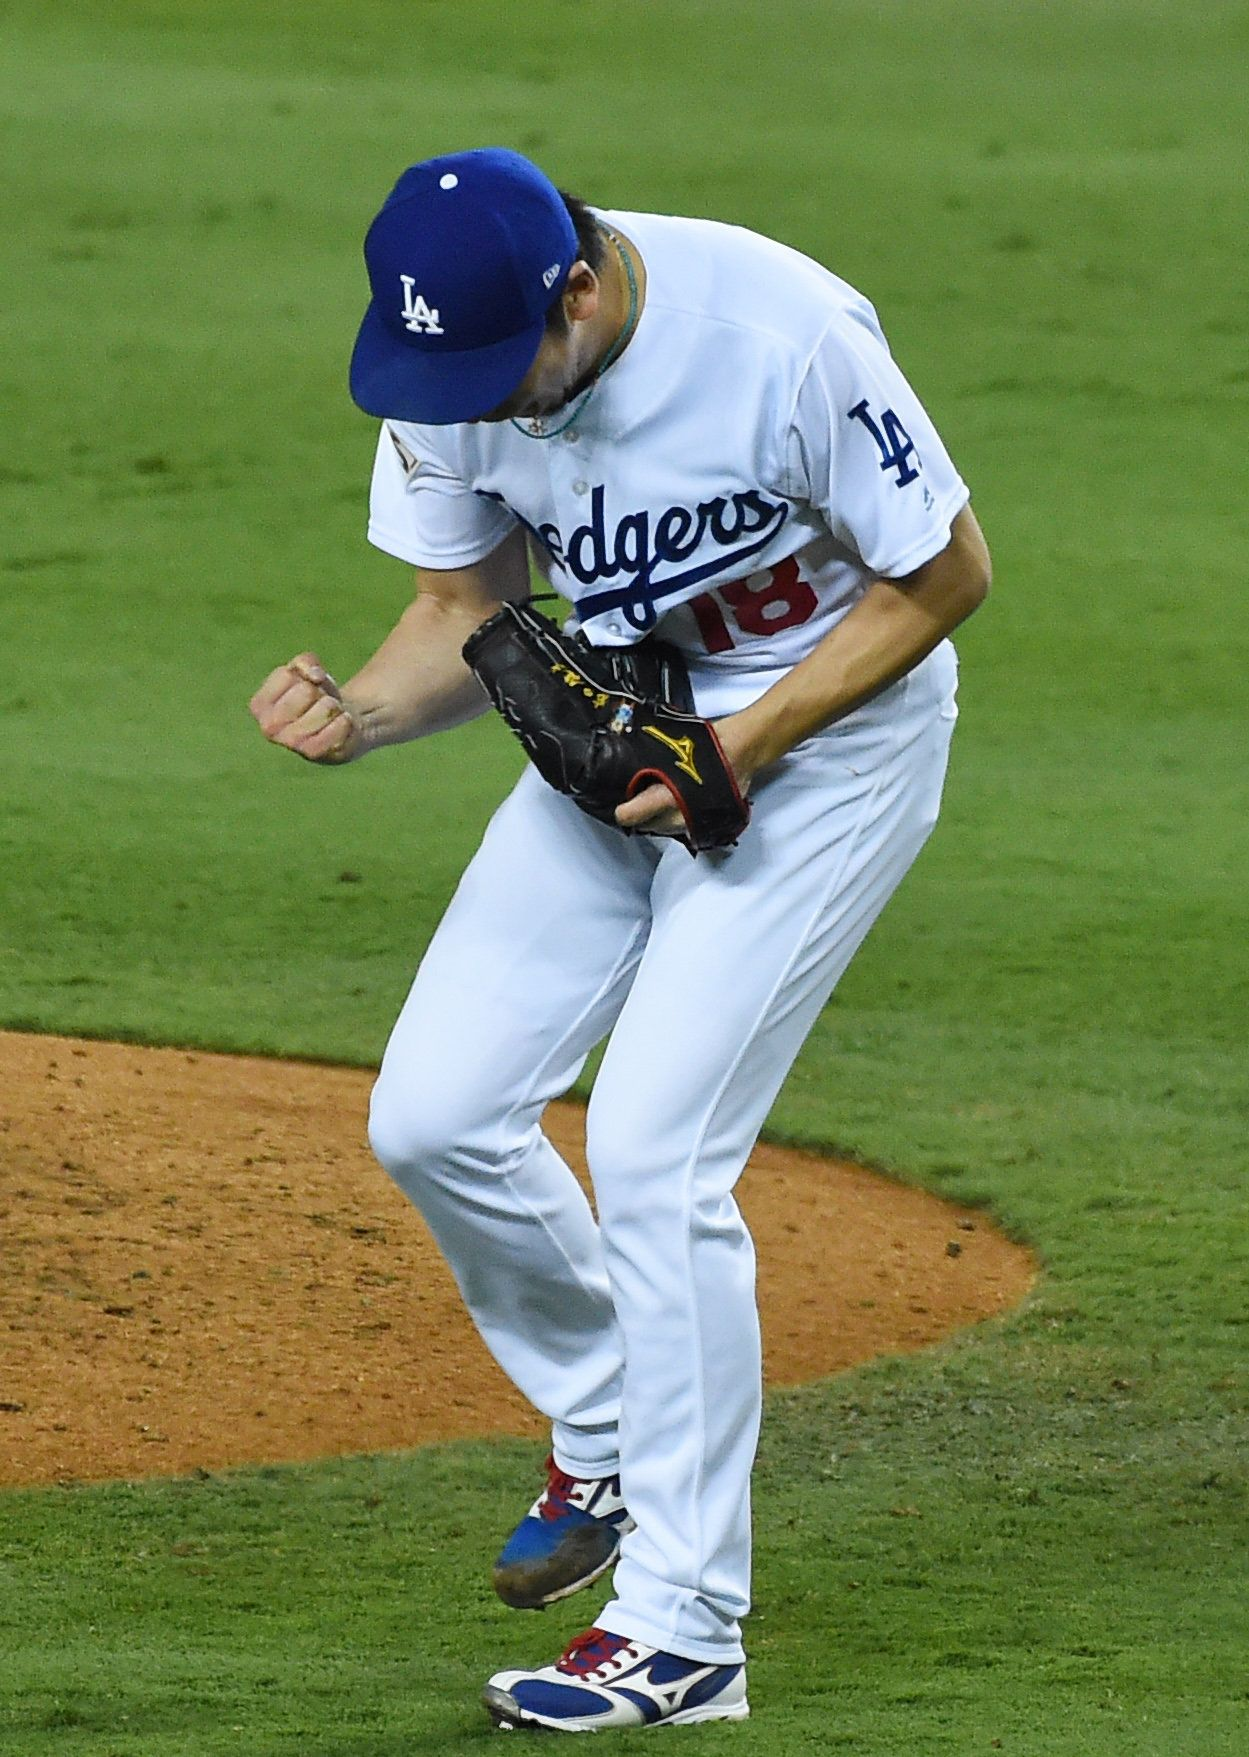 Oct 31, 2017; Los Angeles, CA, USA; Los Angeles Dodgers pitcher Kenta Maeda reacts after retiring the Houston Astros in the 7th inning in game six of the 2017 World Series at Dodger Stadium. Mandatory Credit: Jayne Kamin-Oncea-USA TODAY Sports